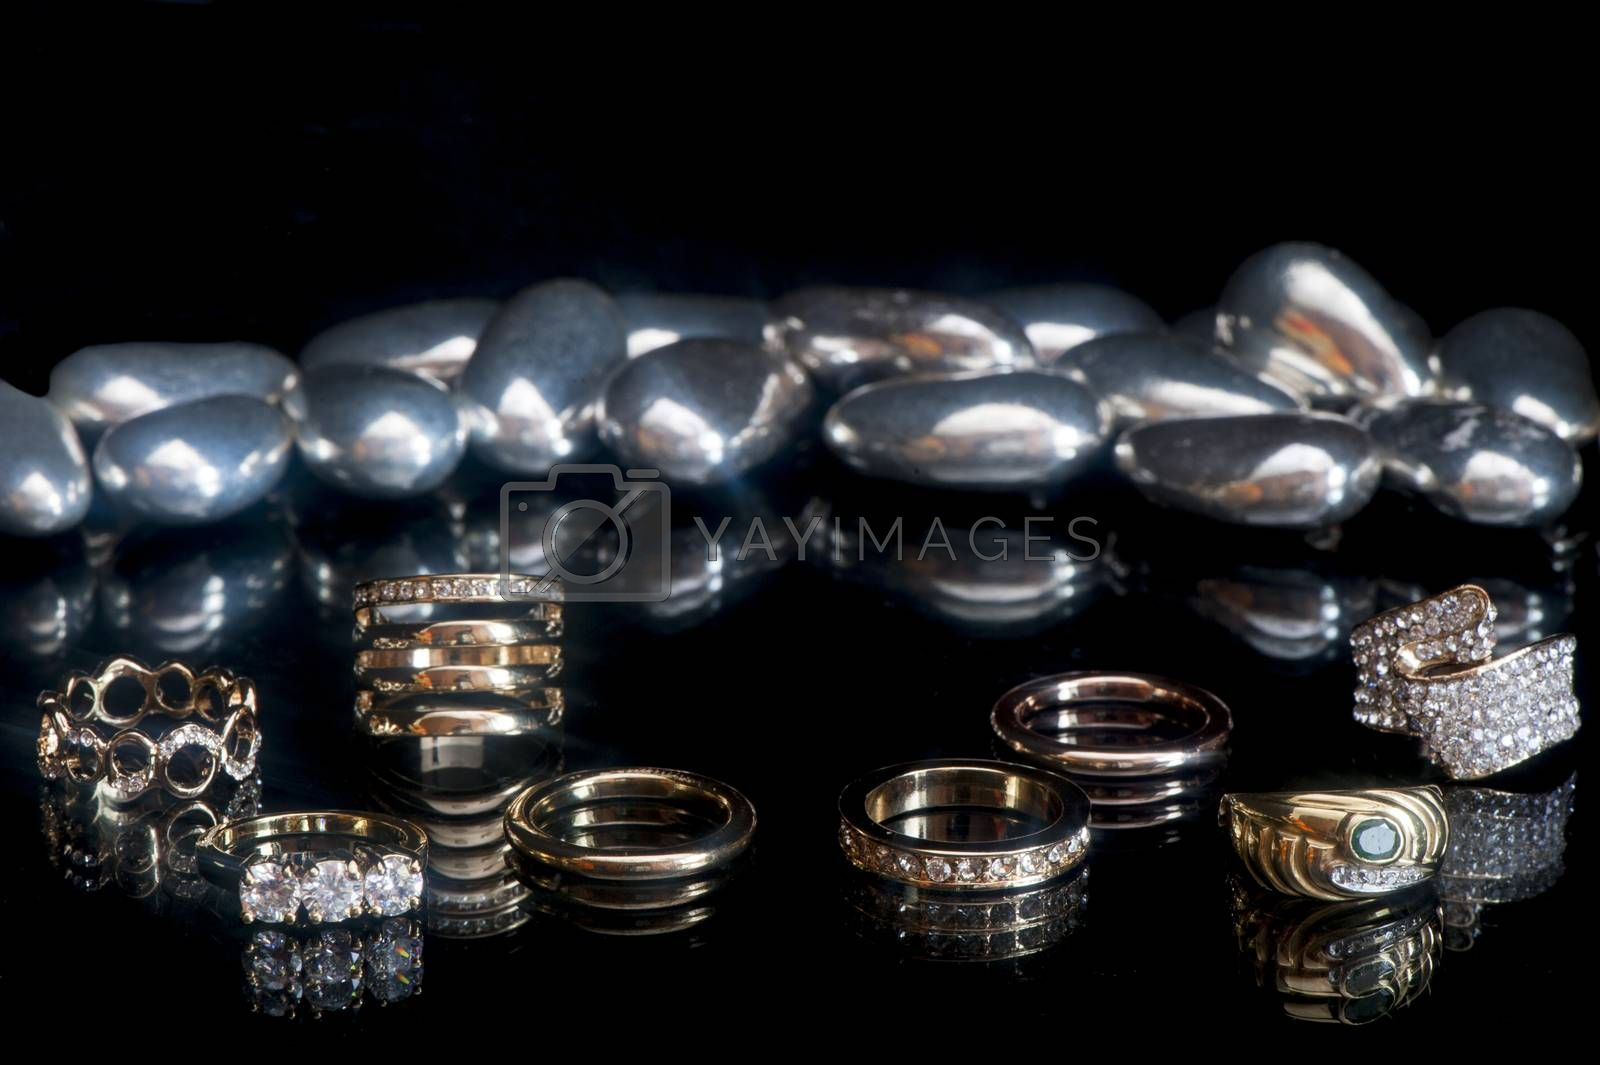 a wedding ring on a black background